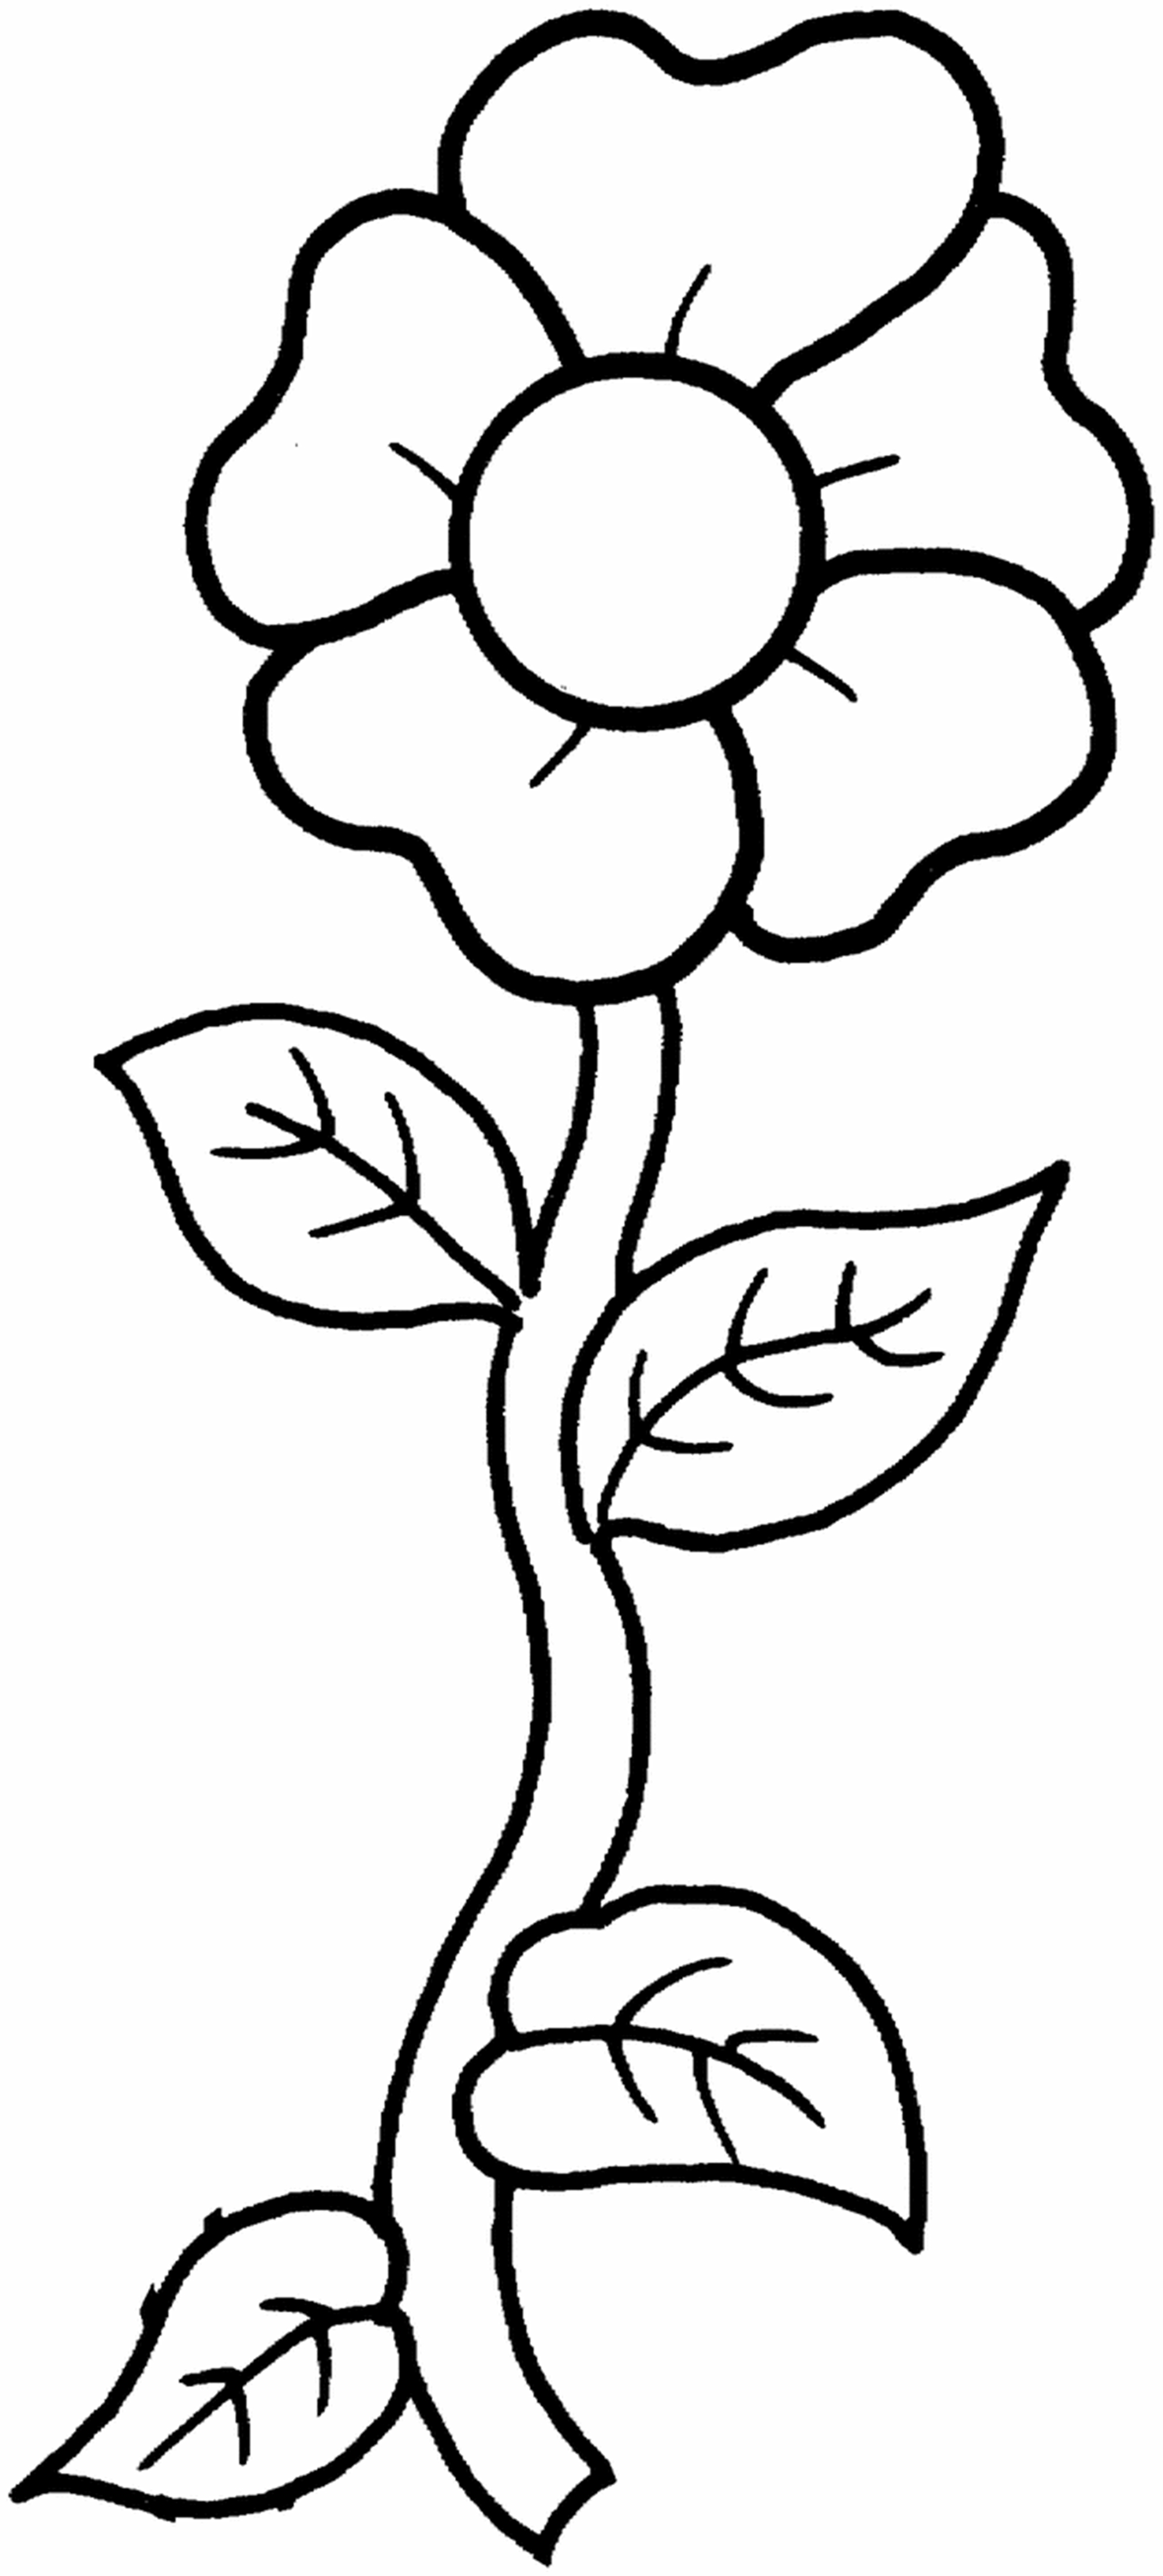 flowers outlines for colouring free printable flower coloring pages for kids  best for outlines flowers colouring